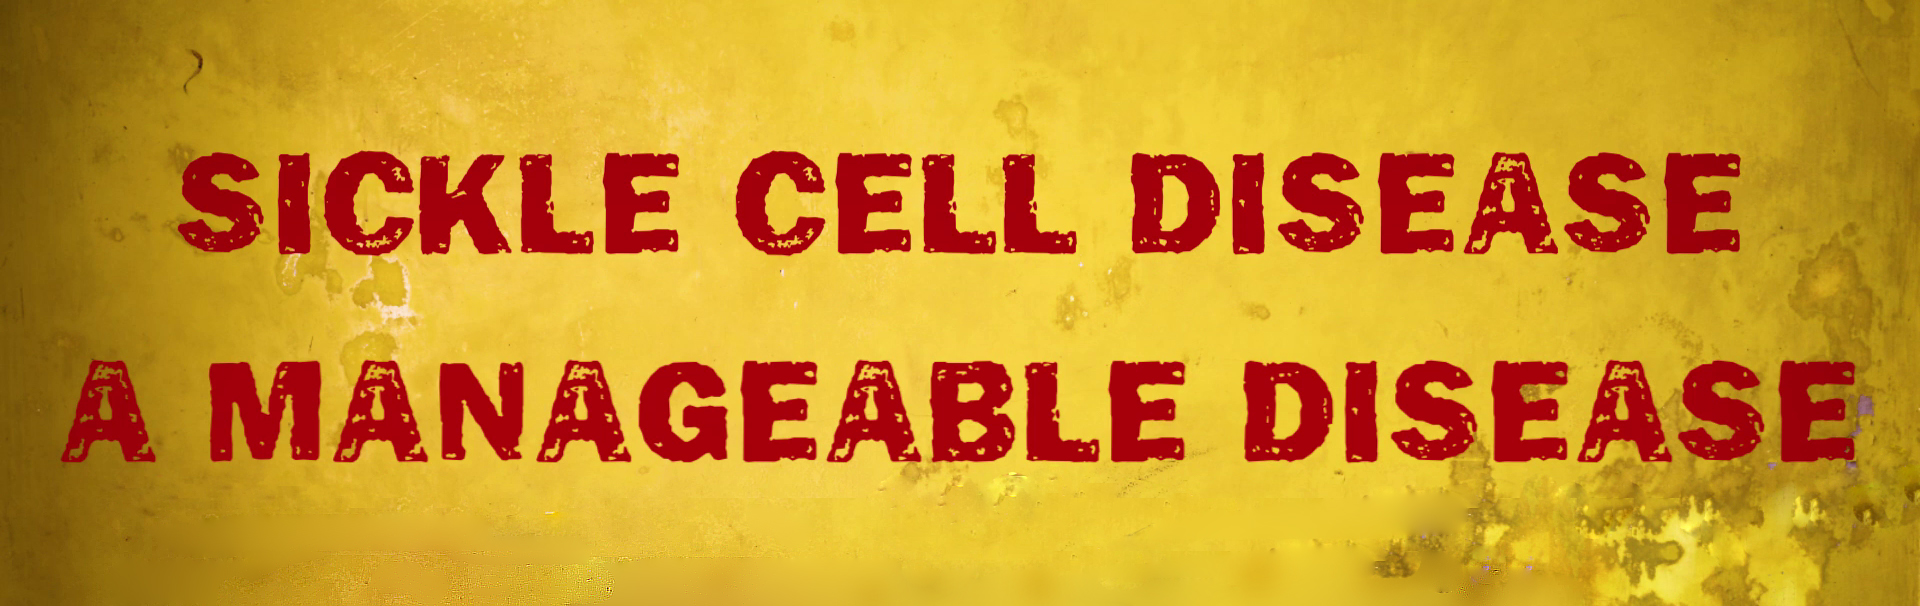 Sickle Cell Disease: A Manageable Disease Hero